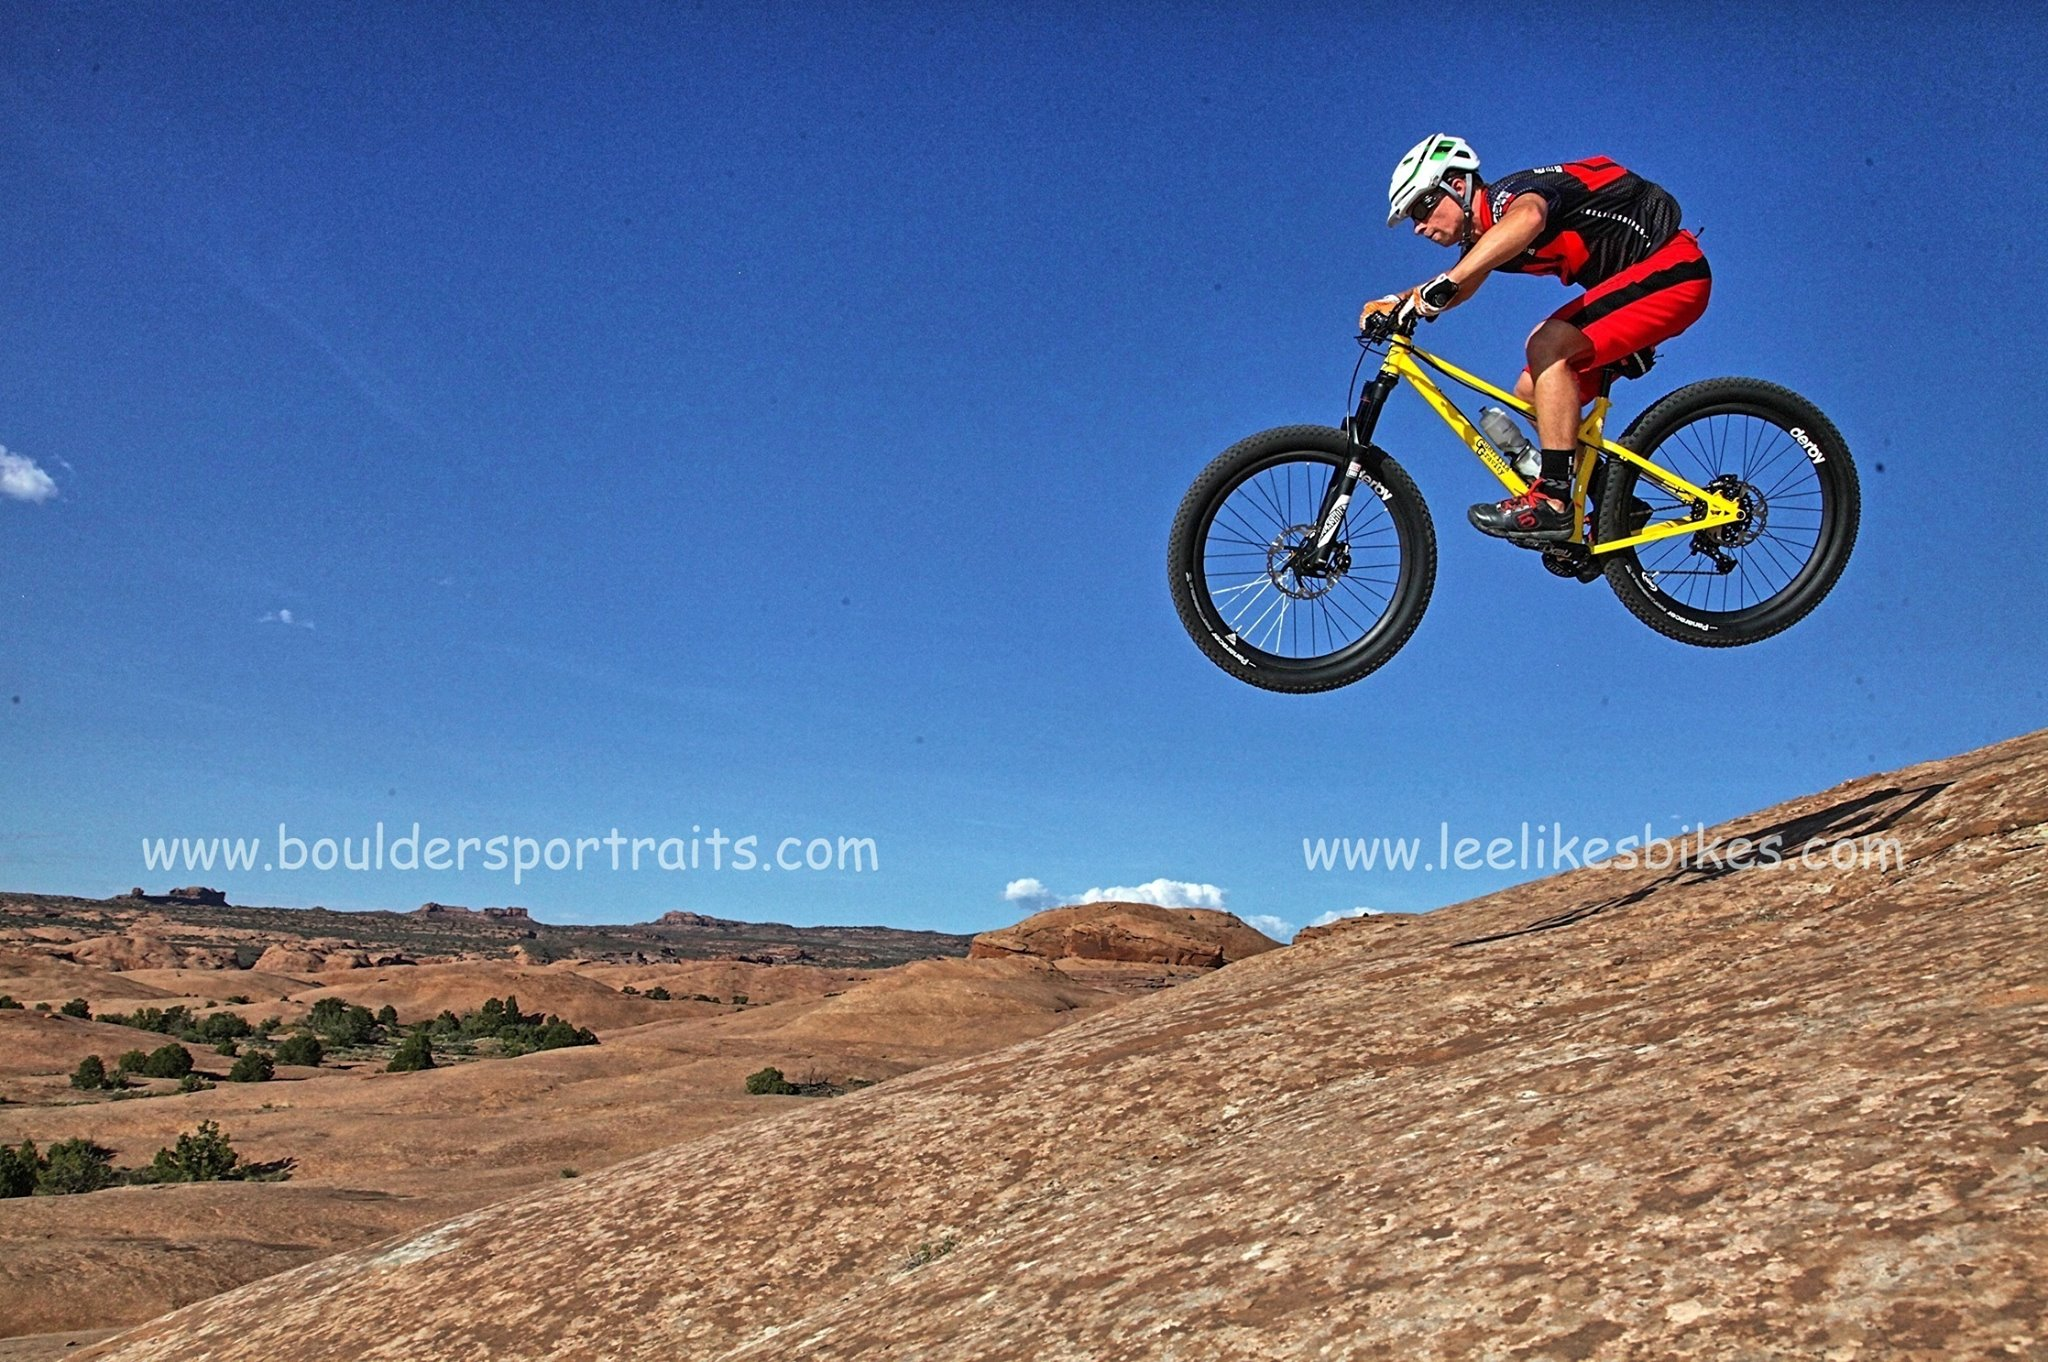 Kevin sends it in Moab